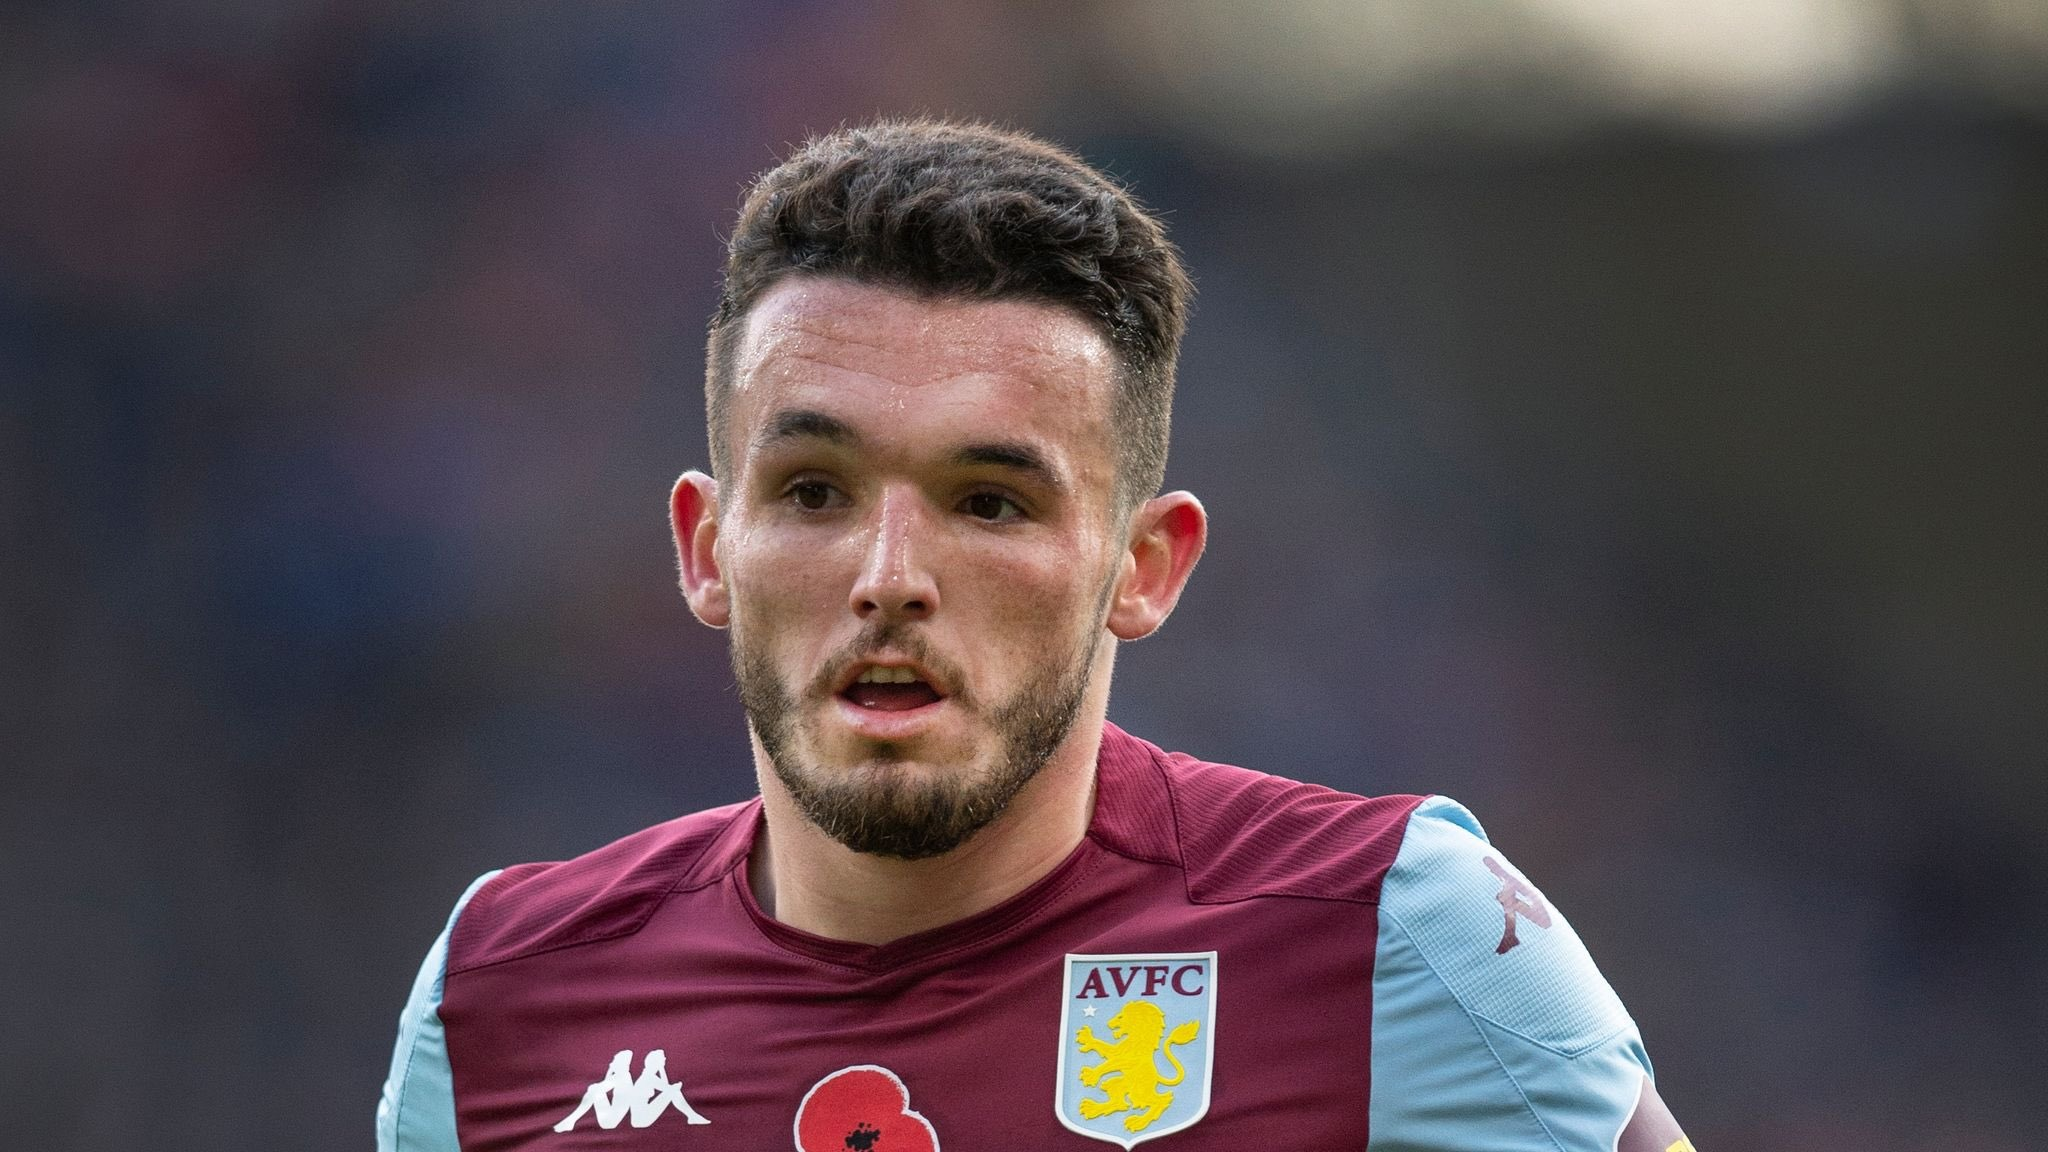 Liverpool interested in surprise Aston Villa star admired by Jurgen Klopp and the Reds' squad